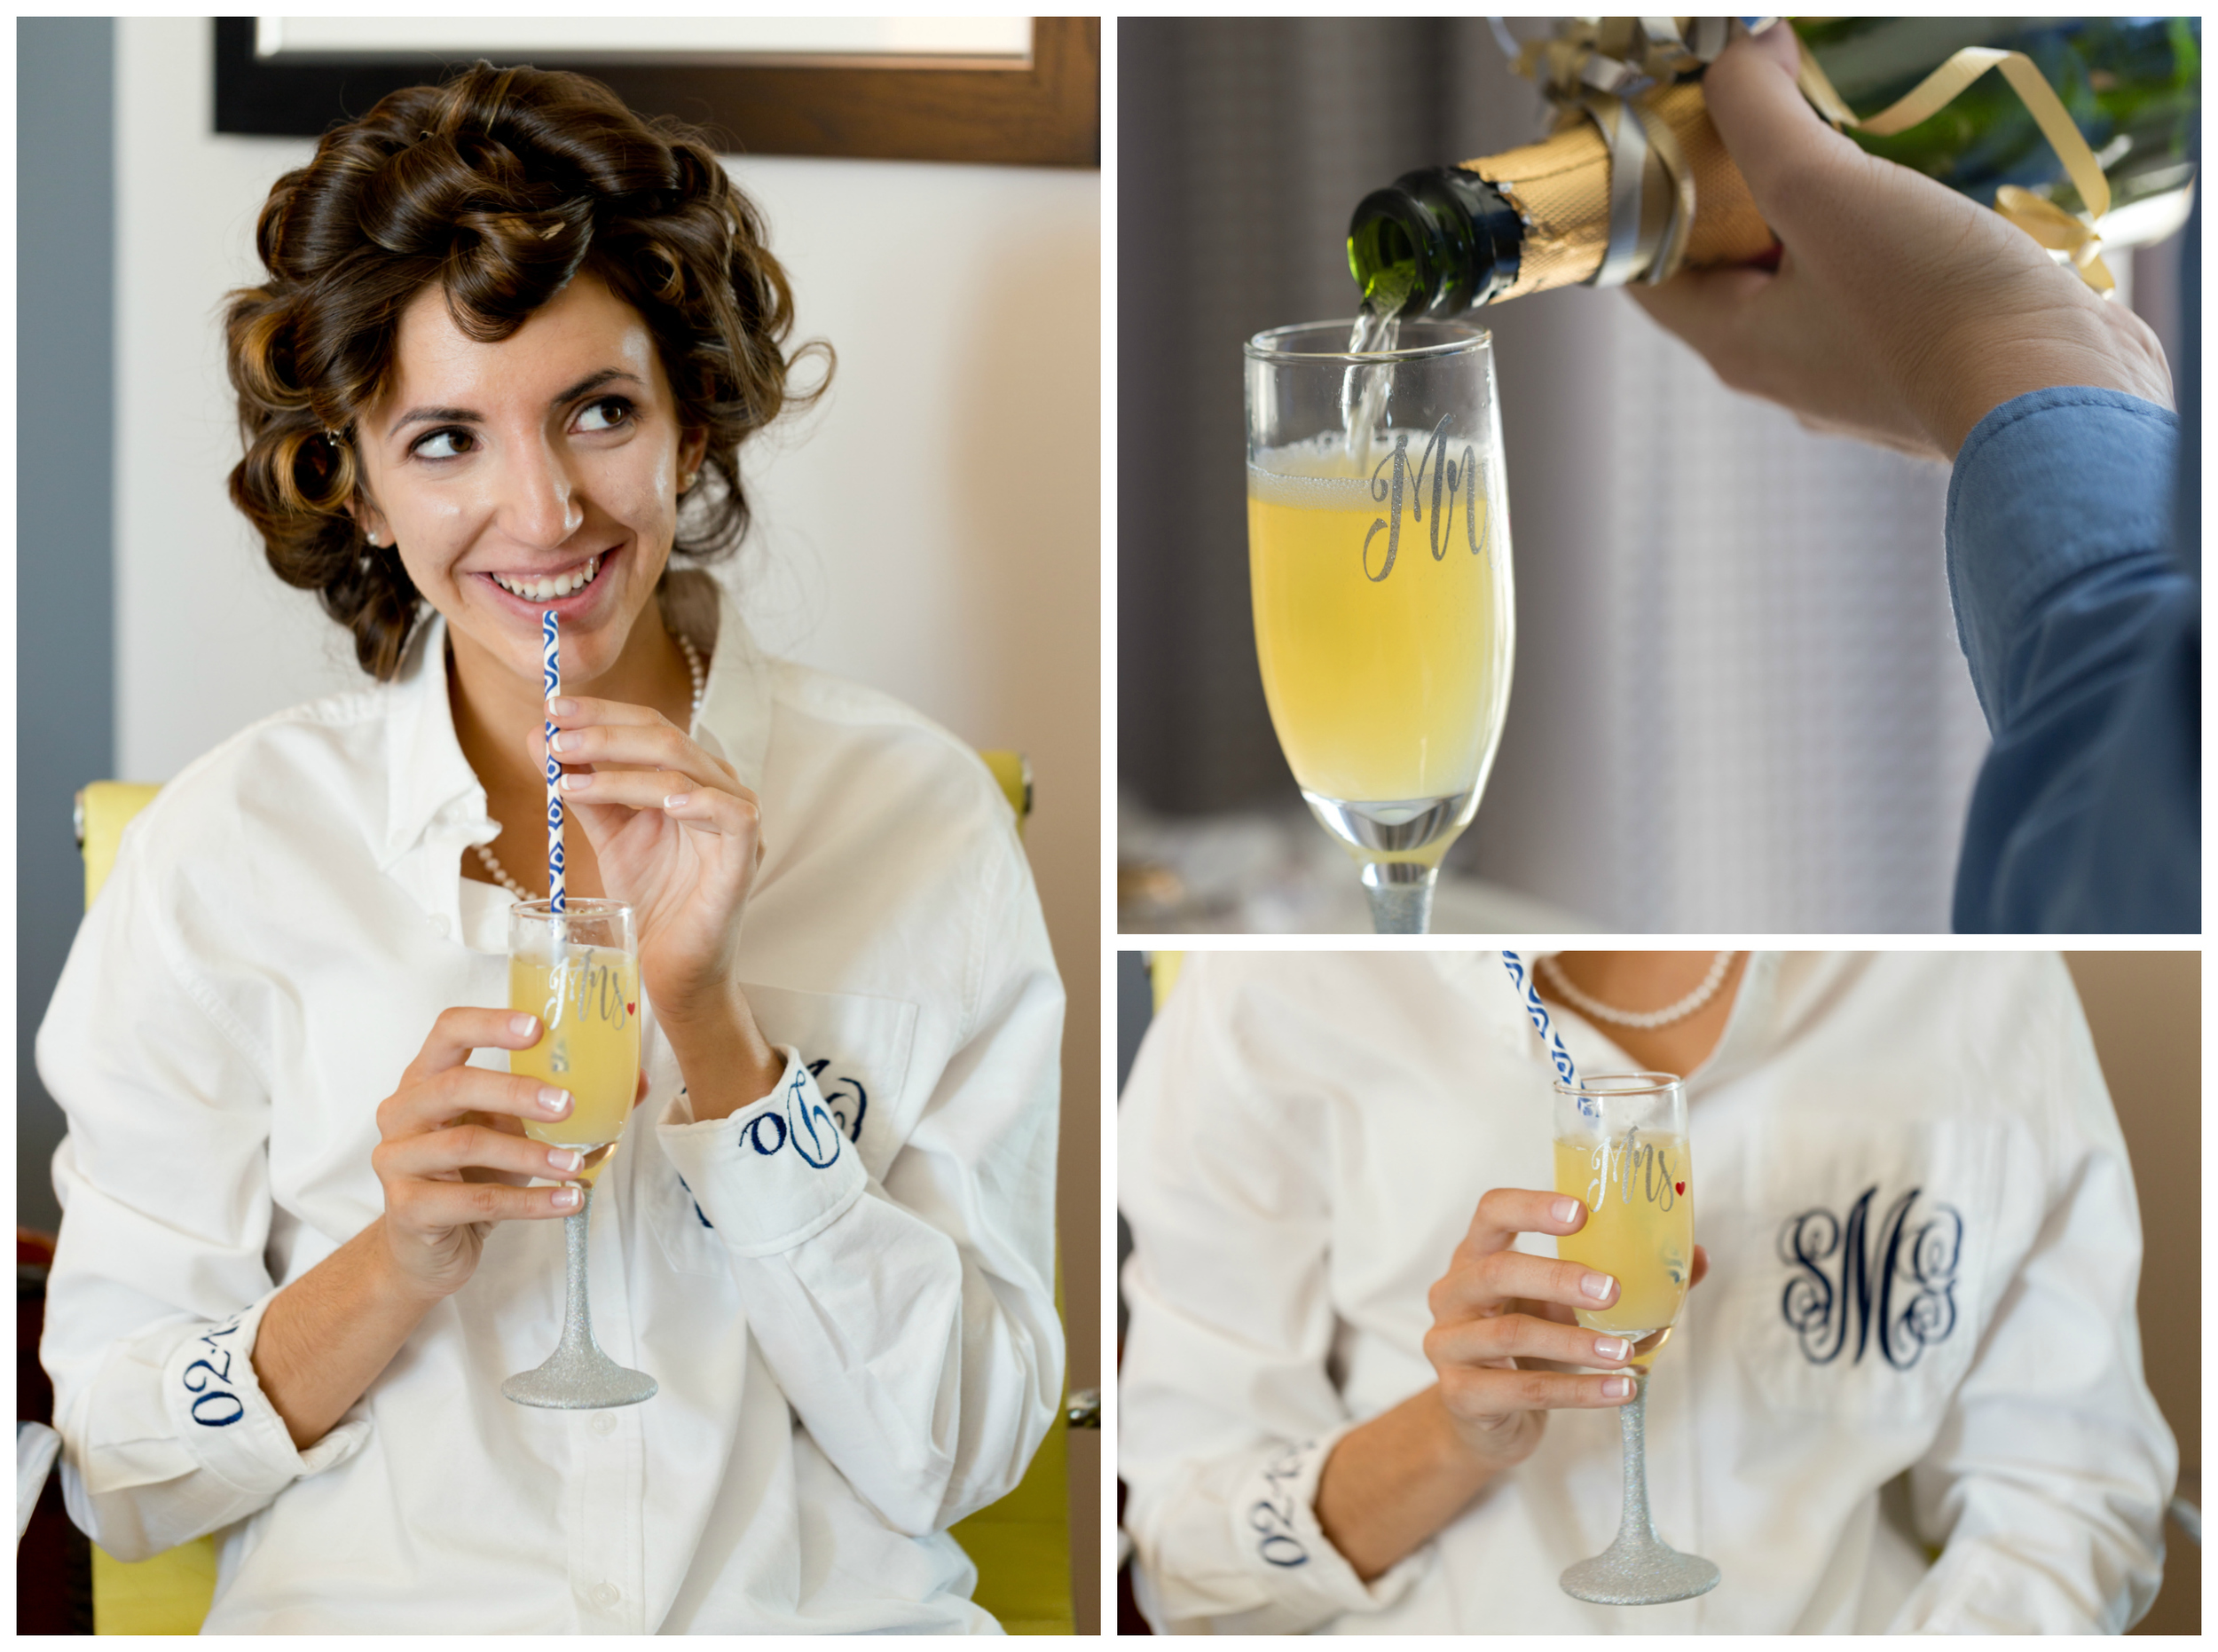 bride with mimosa in Mrs. glass with straw, monogrammed shirt